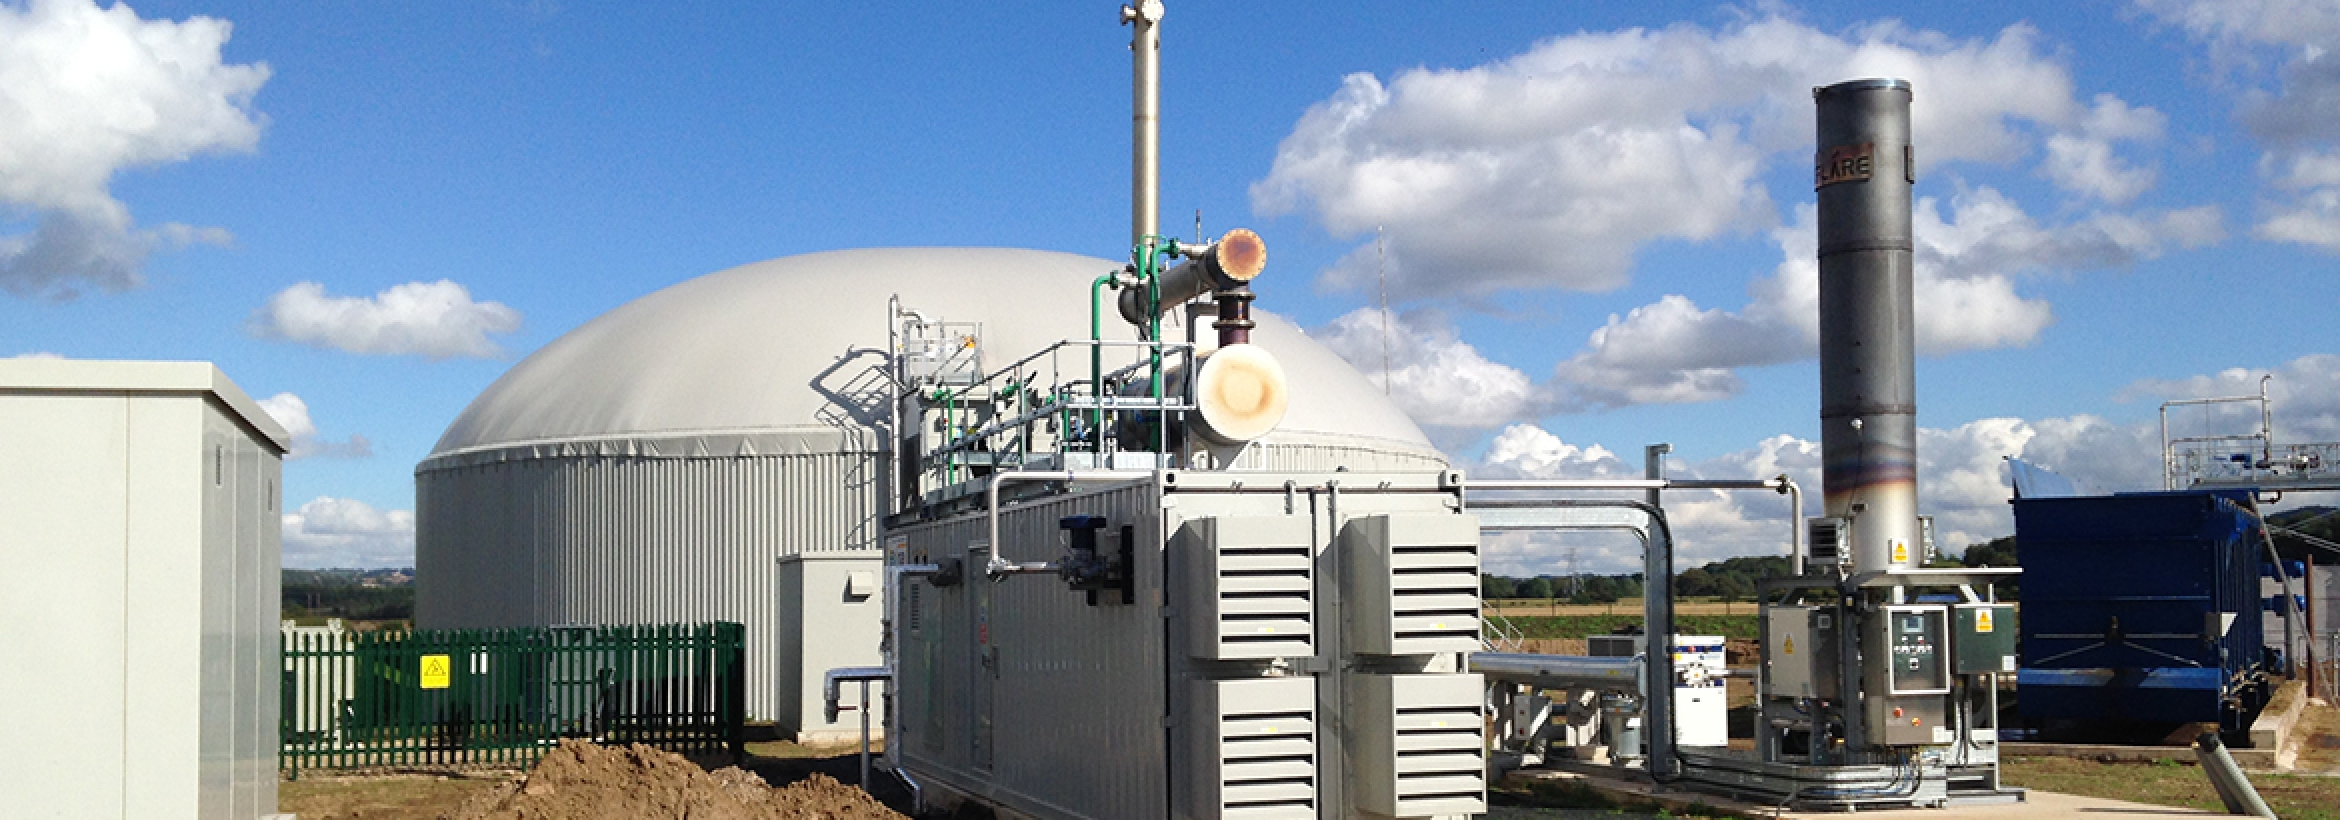 Energy generation installation at NFU Energy client site